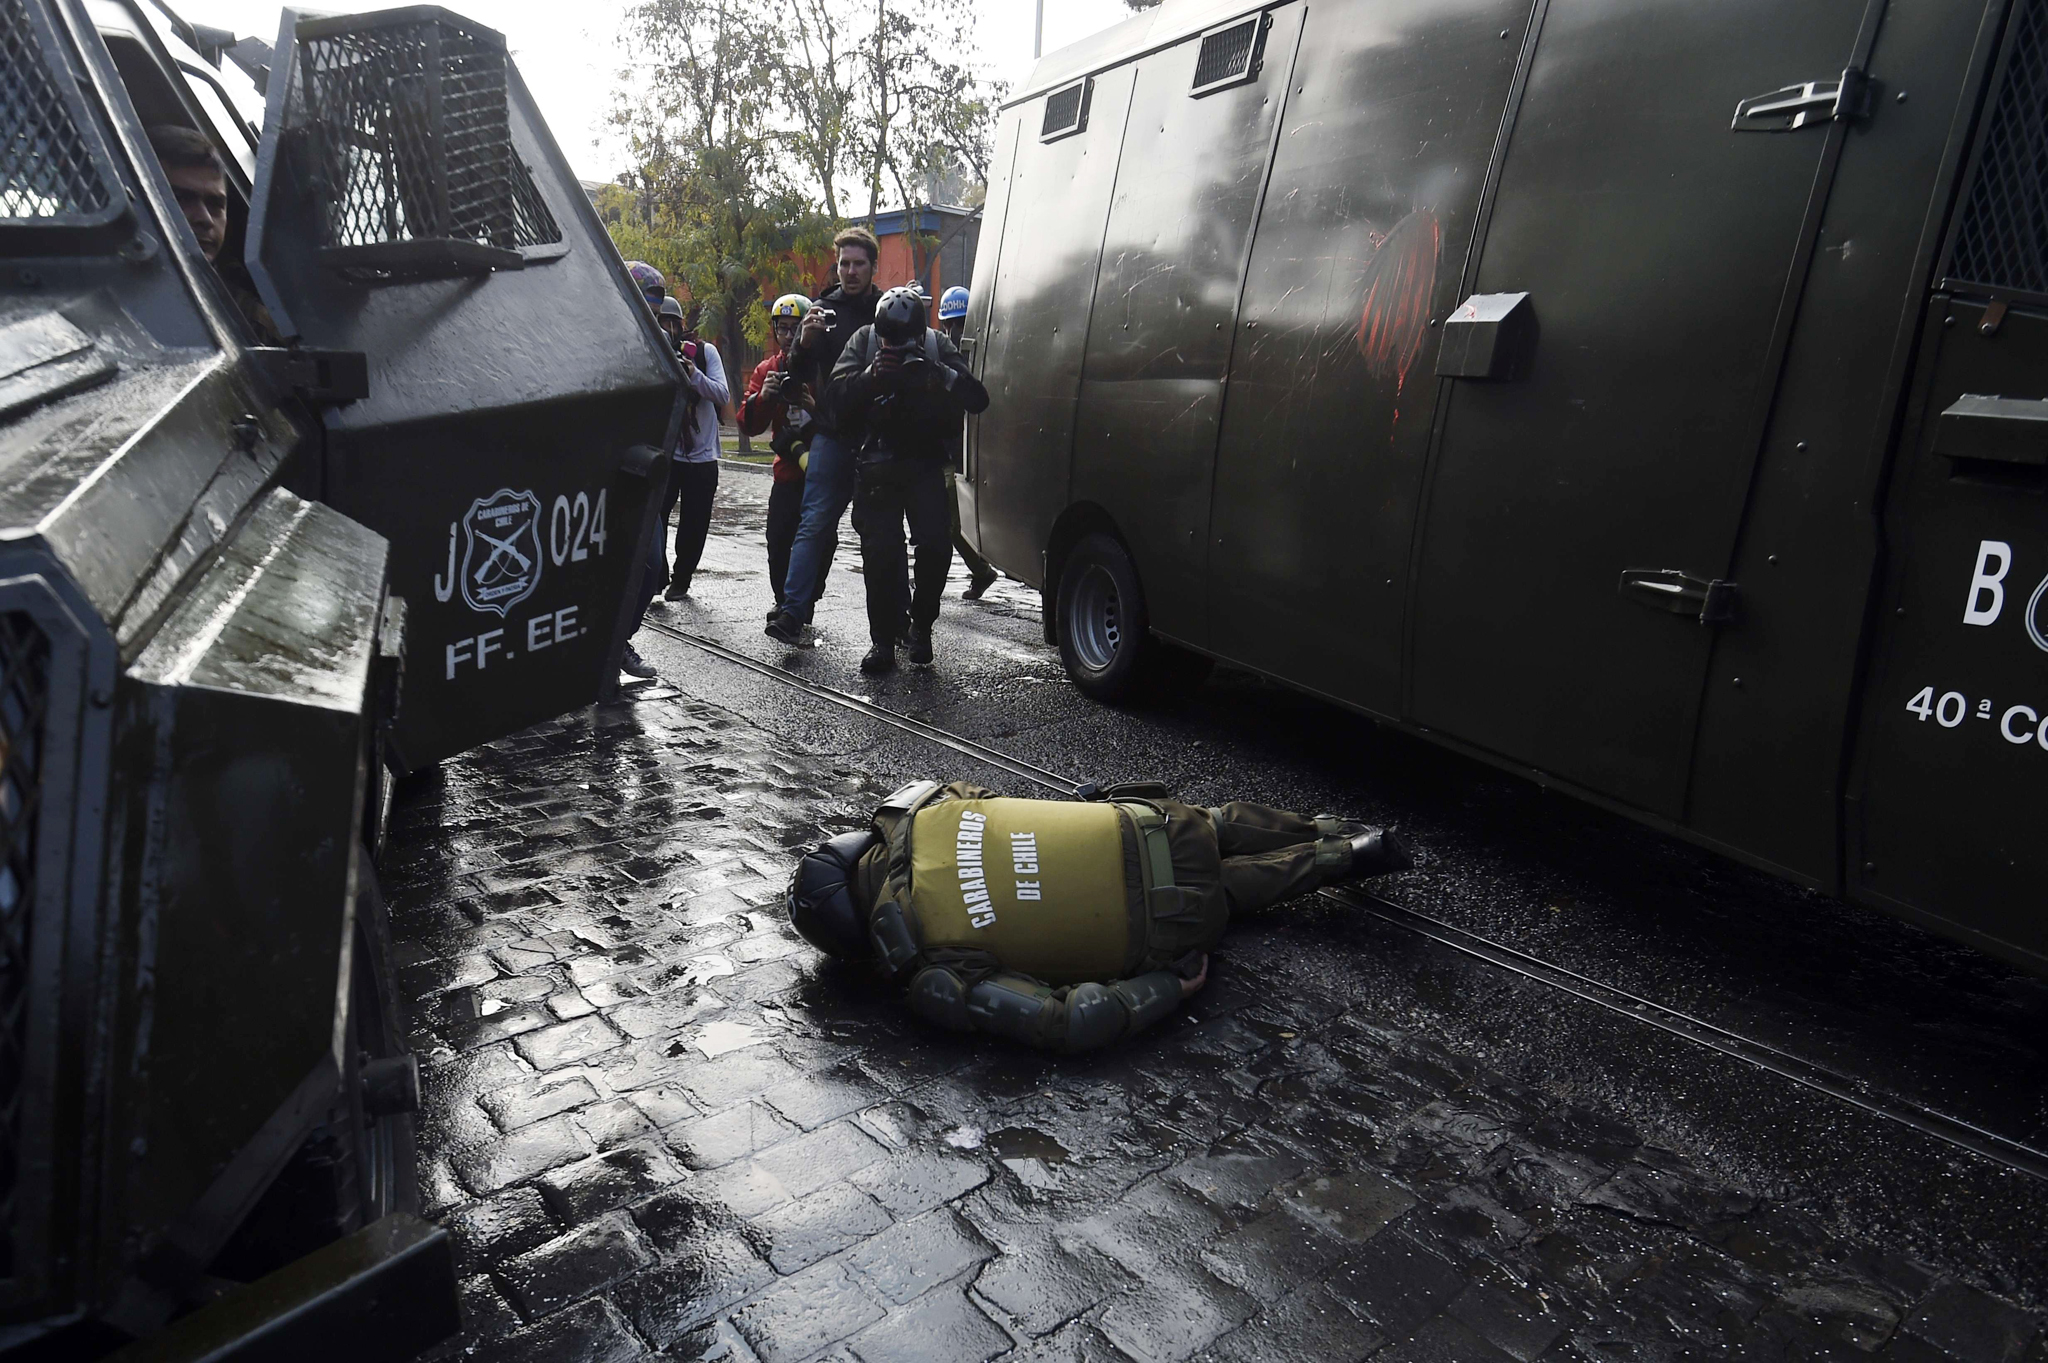 An injured police officer lies ...TOPSHOTS An injured police officer lies on the ground during clashes with violent demonstrators which erupted at the end of a march of students and teachers protesting against what they call inadequate education reforms, in Santiago, on June 10, 2015 on the eve of the start of the 2015 Copa America continental football tournament here in Chile. Thousands of demonstrators took to the streets of Santiago to condemn President Michelle Bachelet's reforms, claiming they fall short of overhauling an unequal education system inherited from the 1973-1990 dictatorship of late ruler Augusto Pinochet.   AFP PHOTO / JUAN BARRETOJUAN BARRETO/AFP/Getty Images